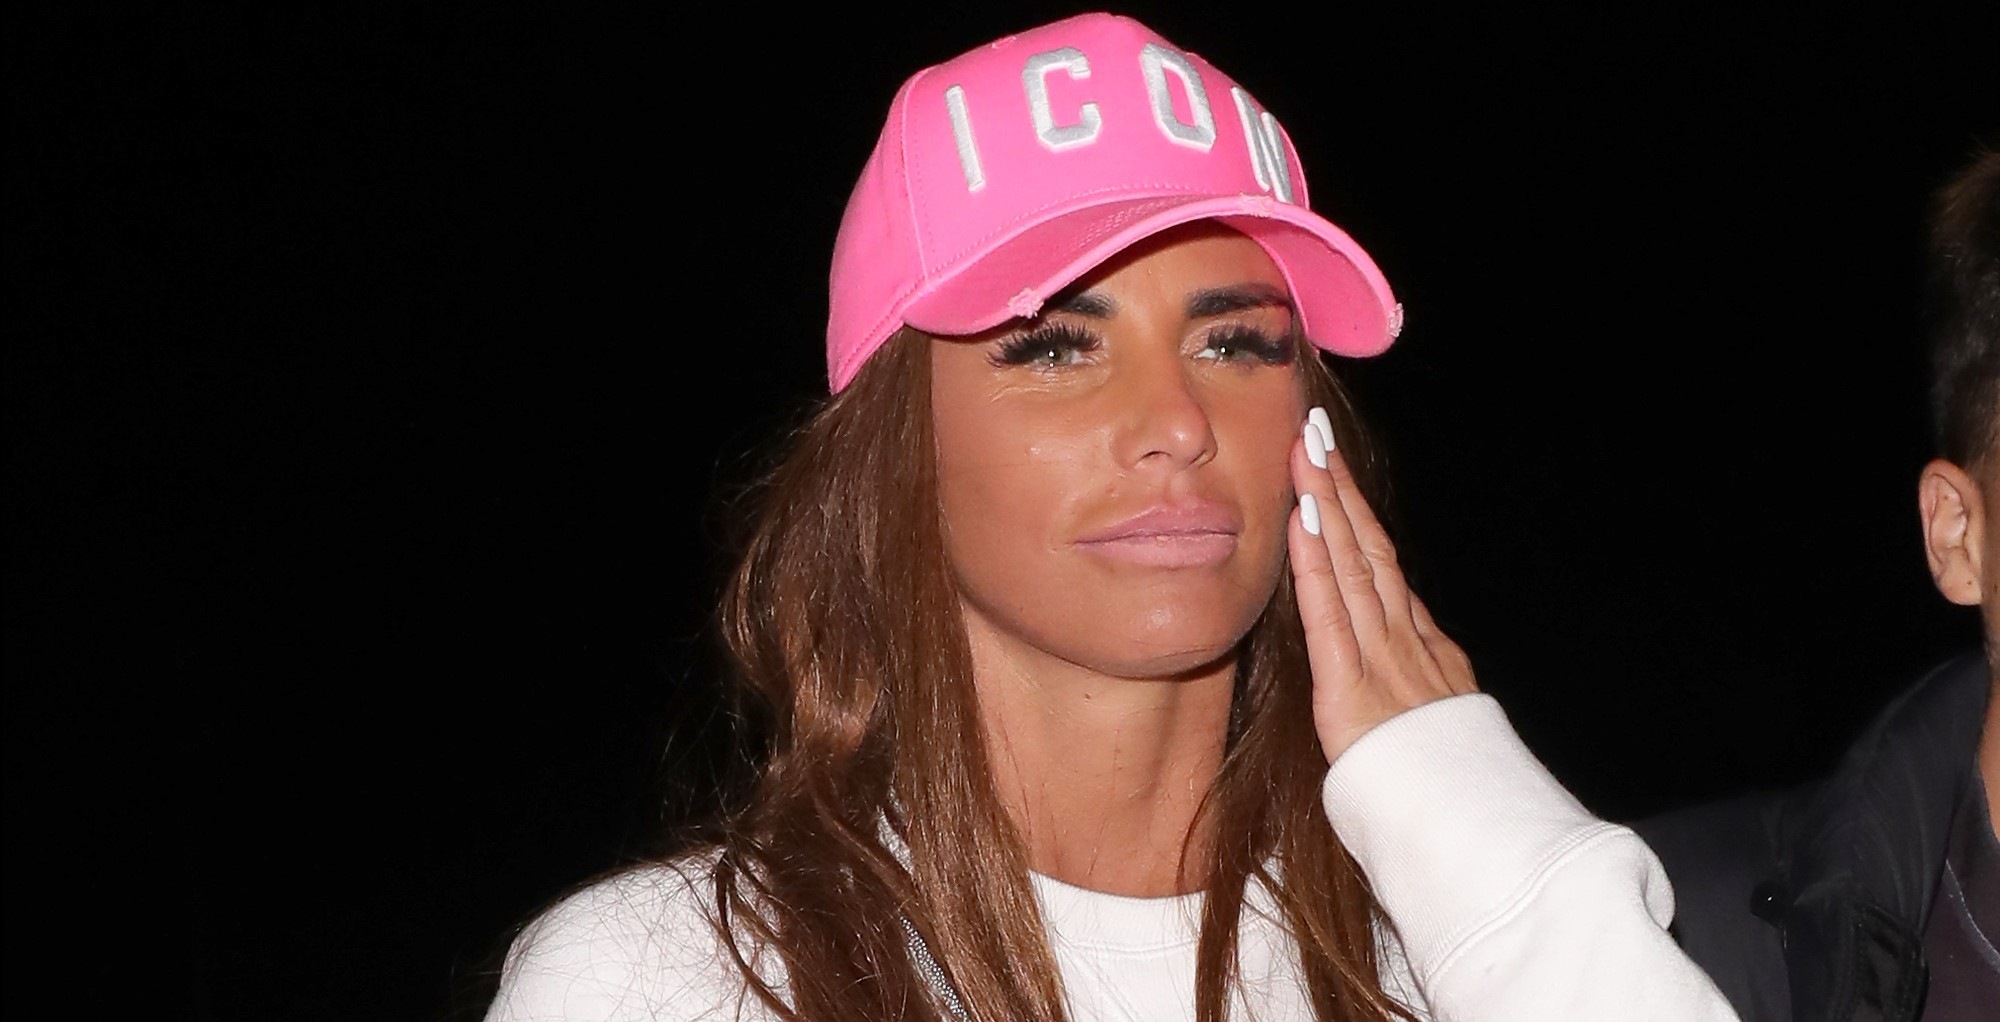 Katie Price 'considering quitting UK to move to America' after bankruptcy